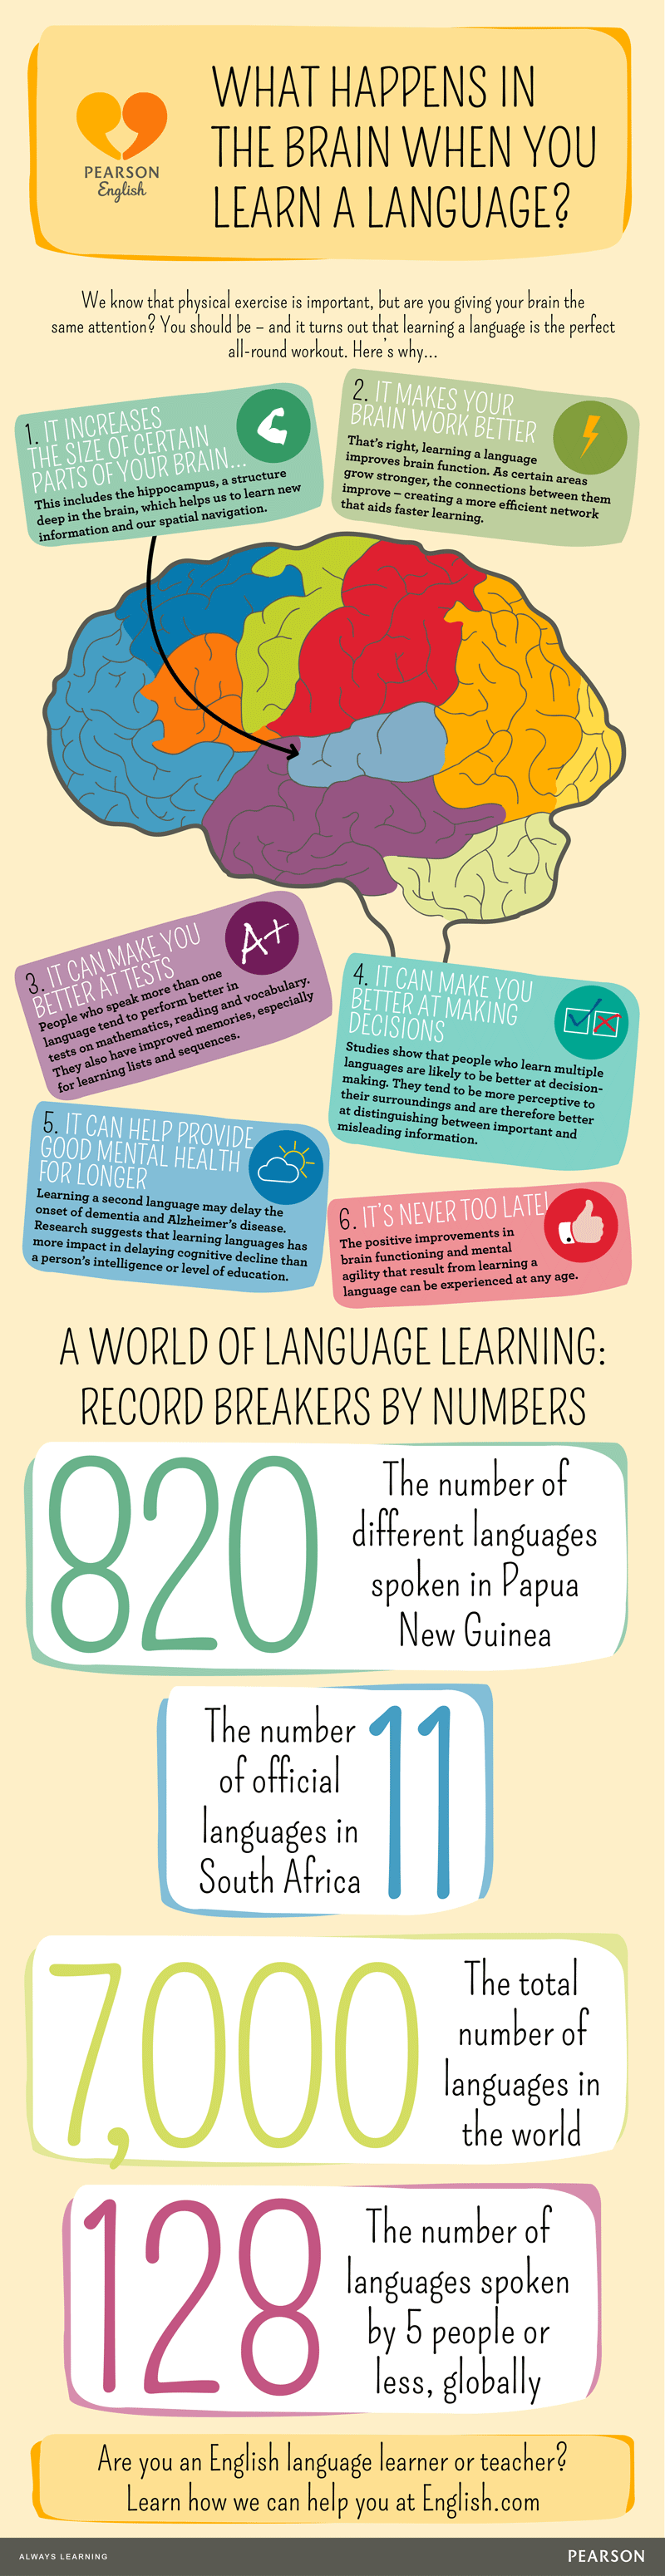 Learning A Second Language Helps To Prevent Dementia